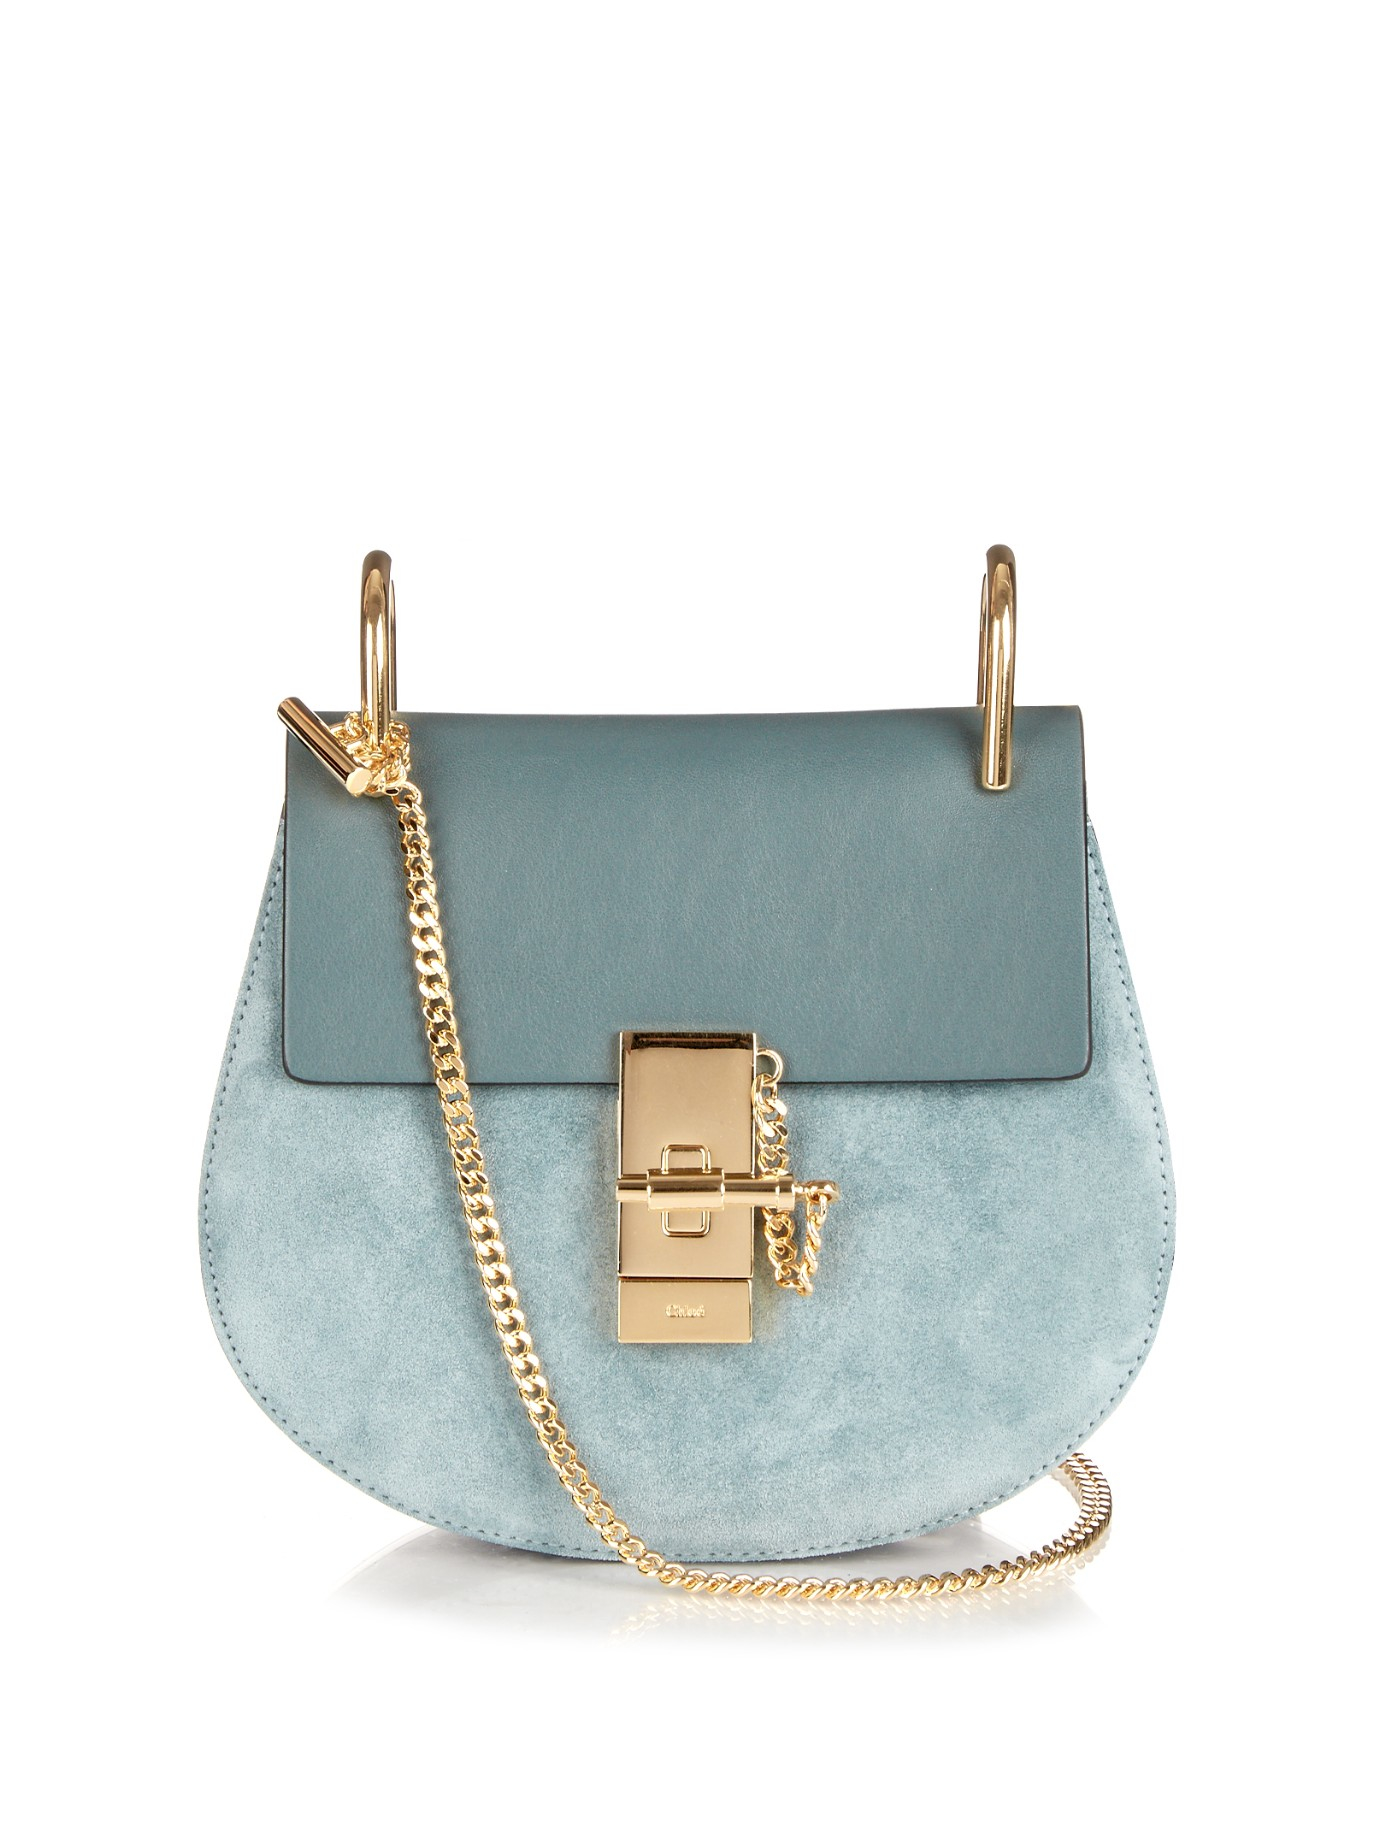 Chloé Drew Mini Leather and Suede Shoulder Bag in Blue - Lyst fcb126354210f